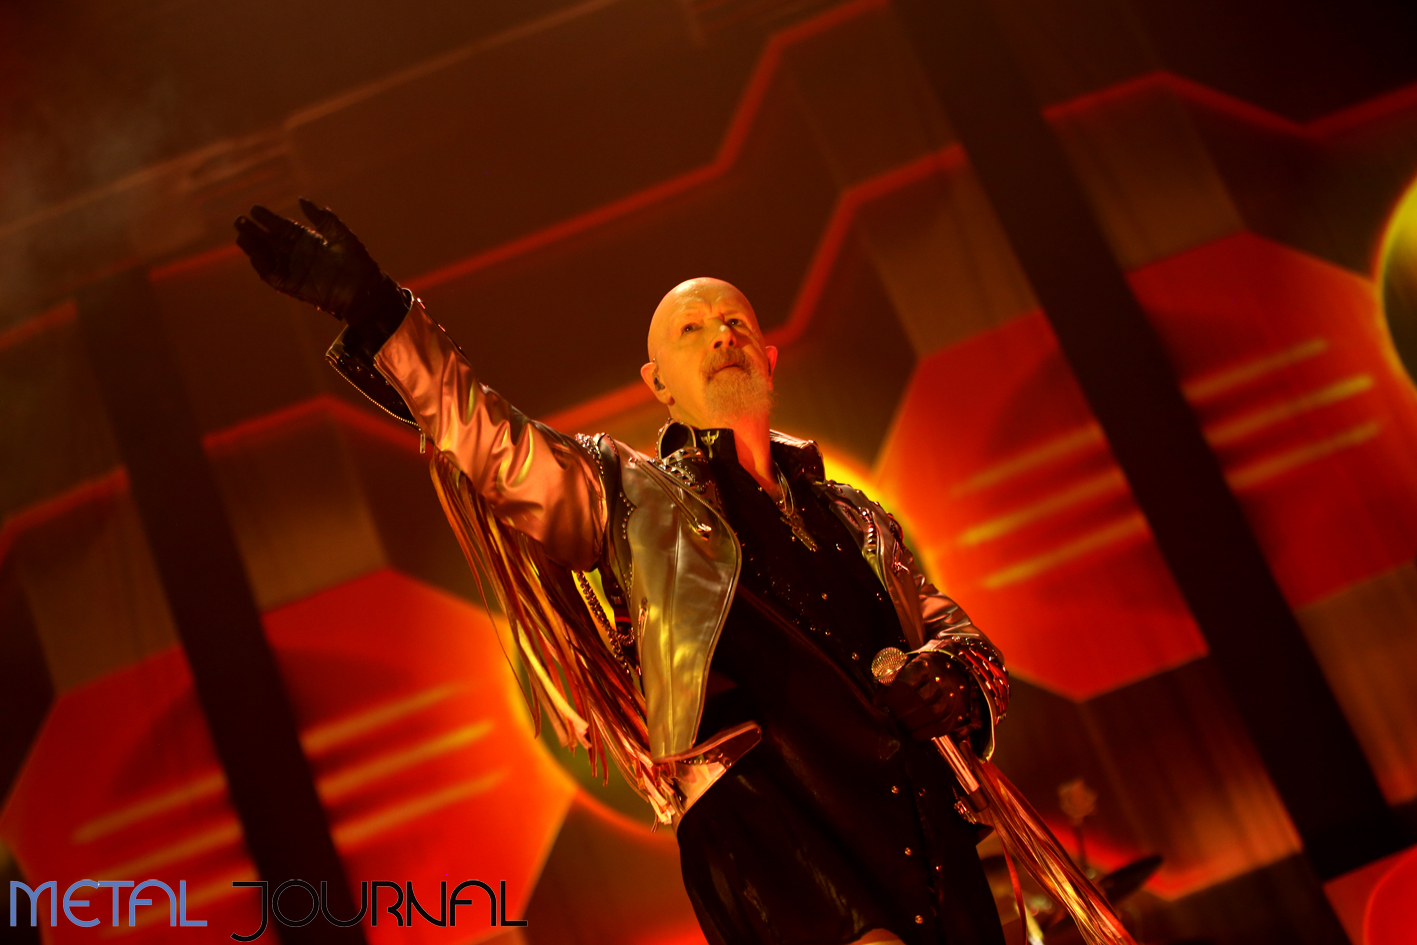 judas priest - metal journal barakaldo 2018 pic 7